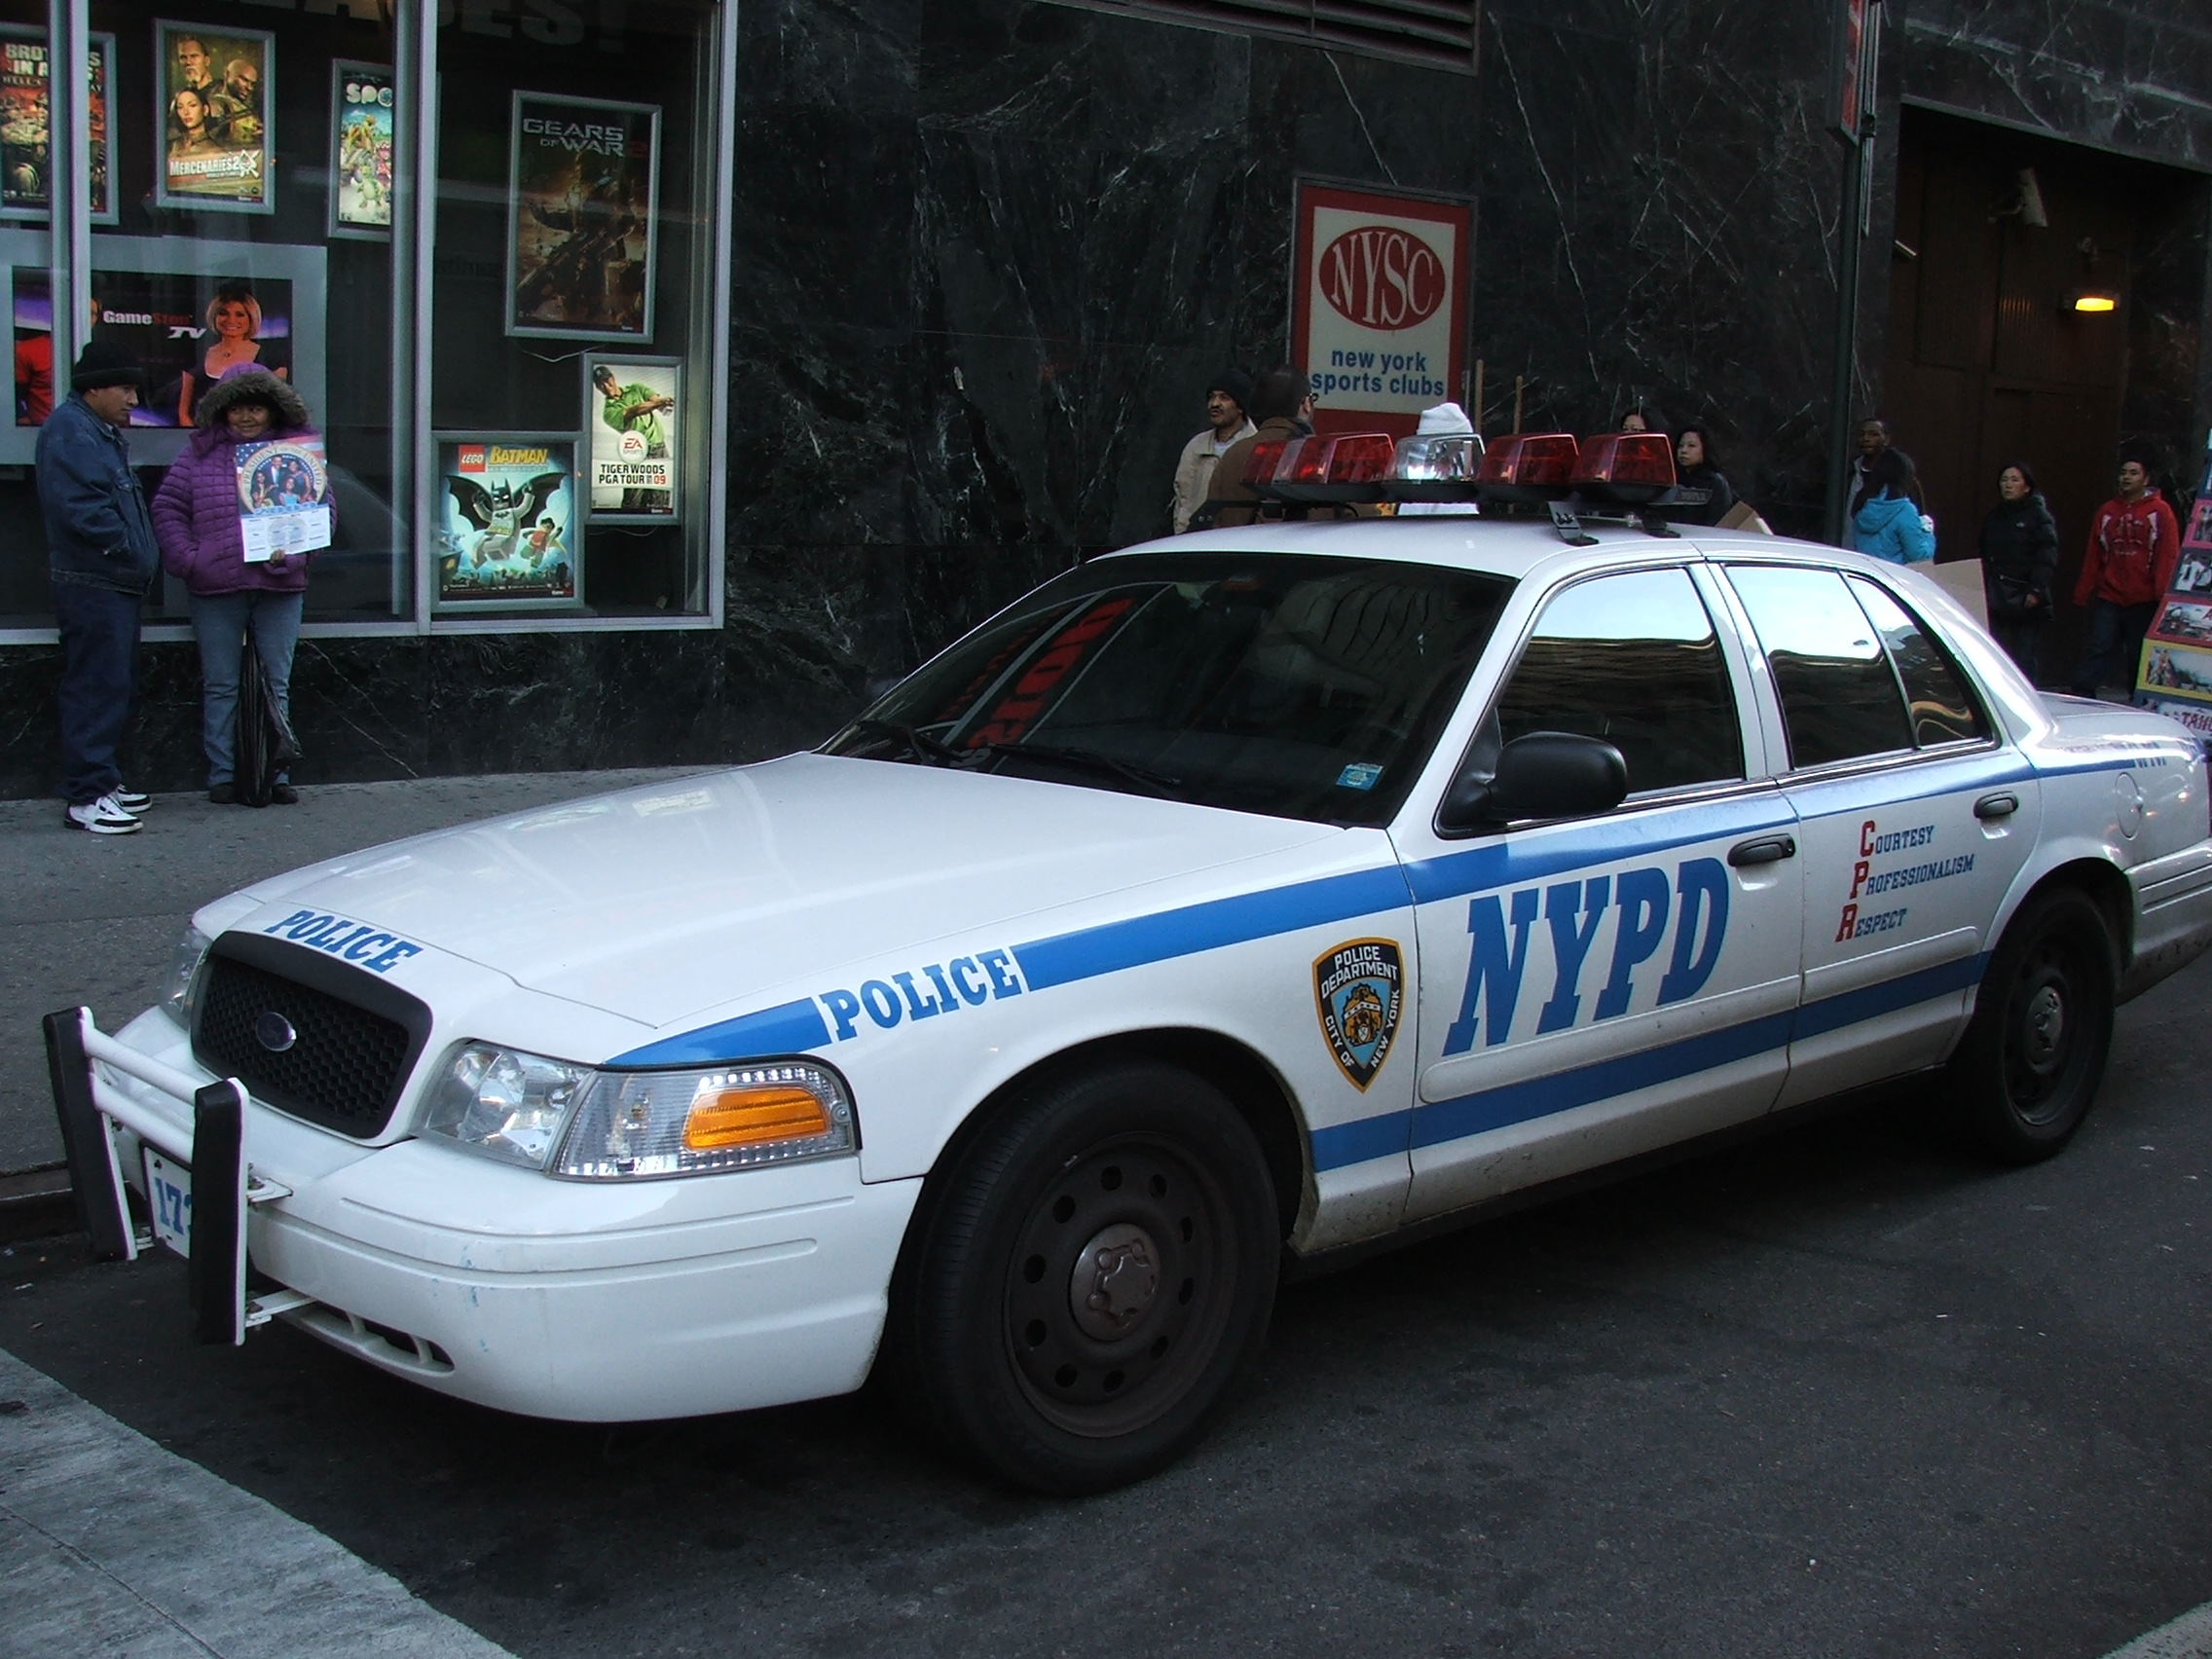 NYPD Police car 3278